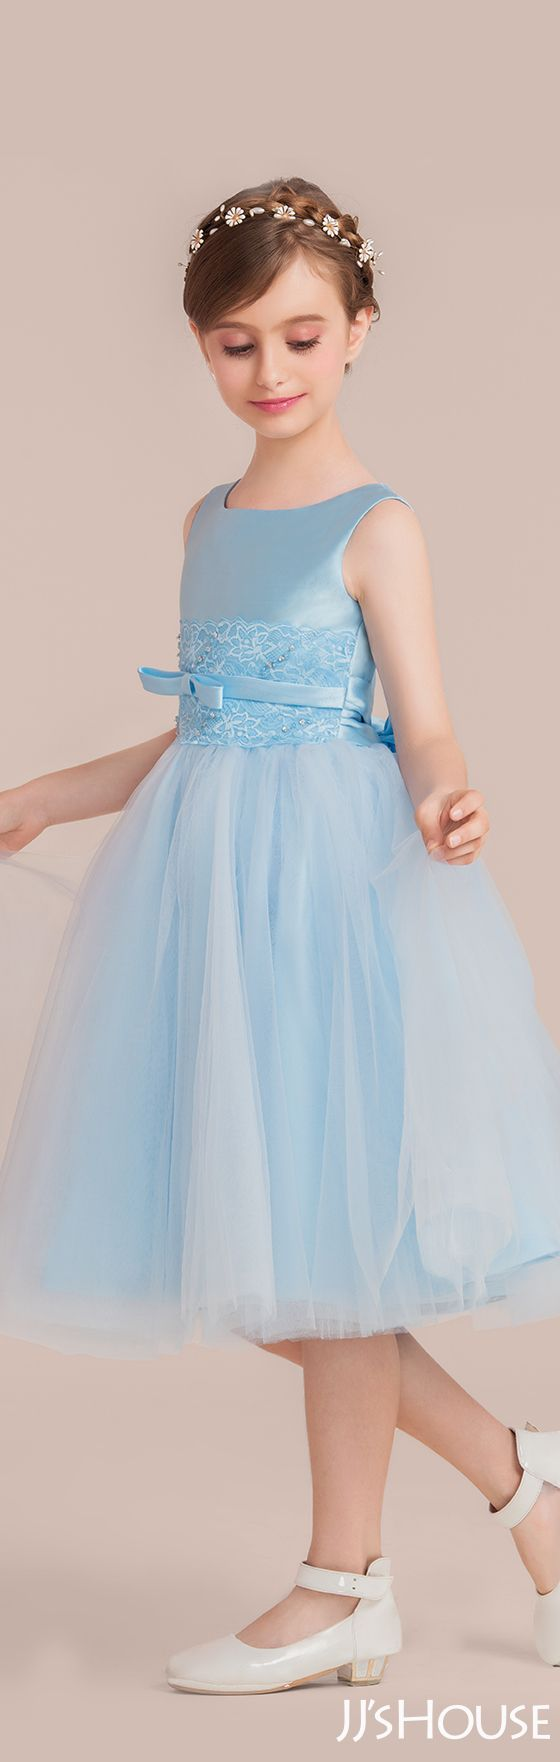 237 best JJ\'s House Junior Bridesmaid Dresses images on Pinterest